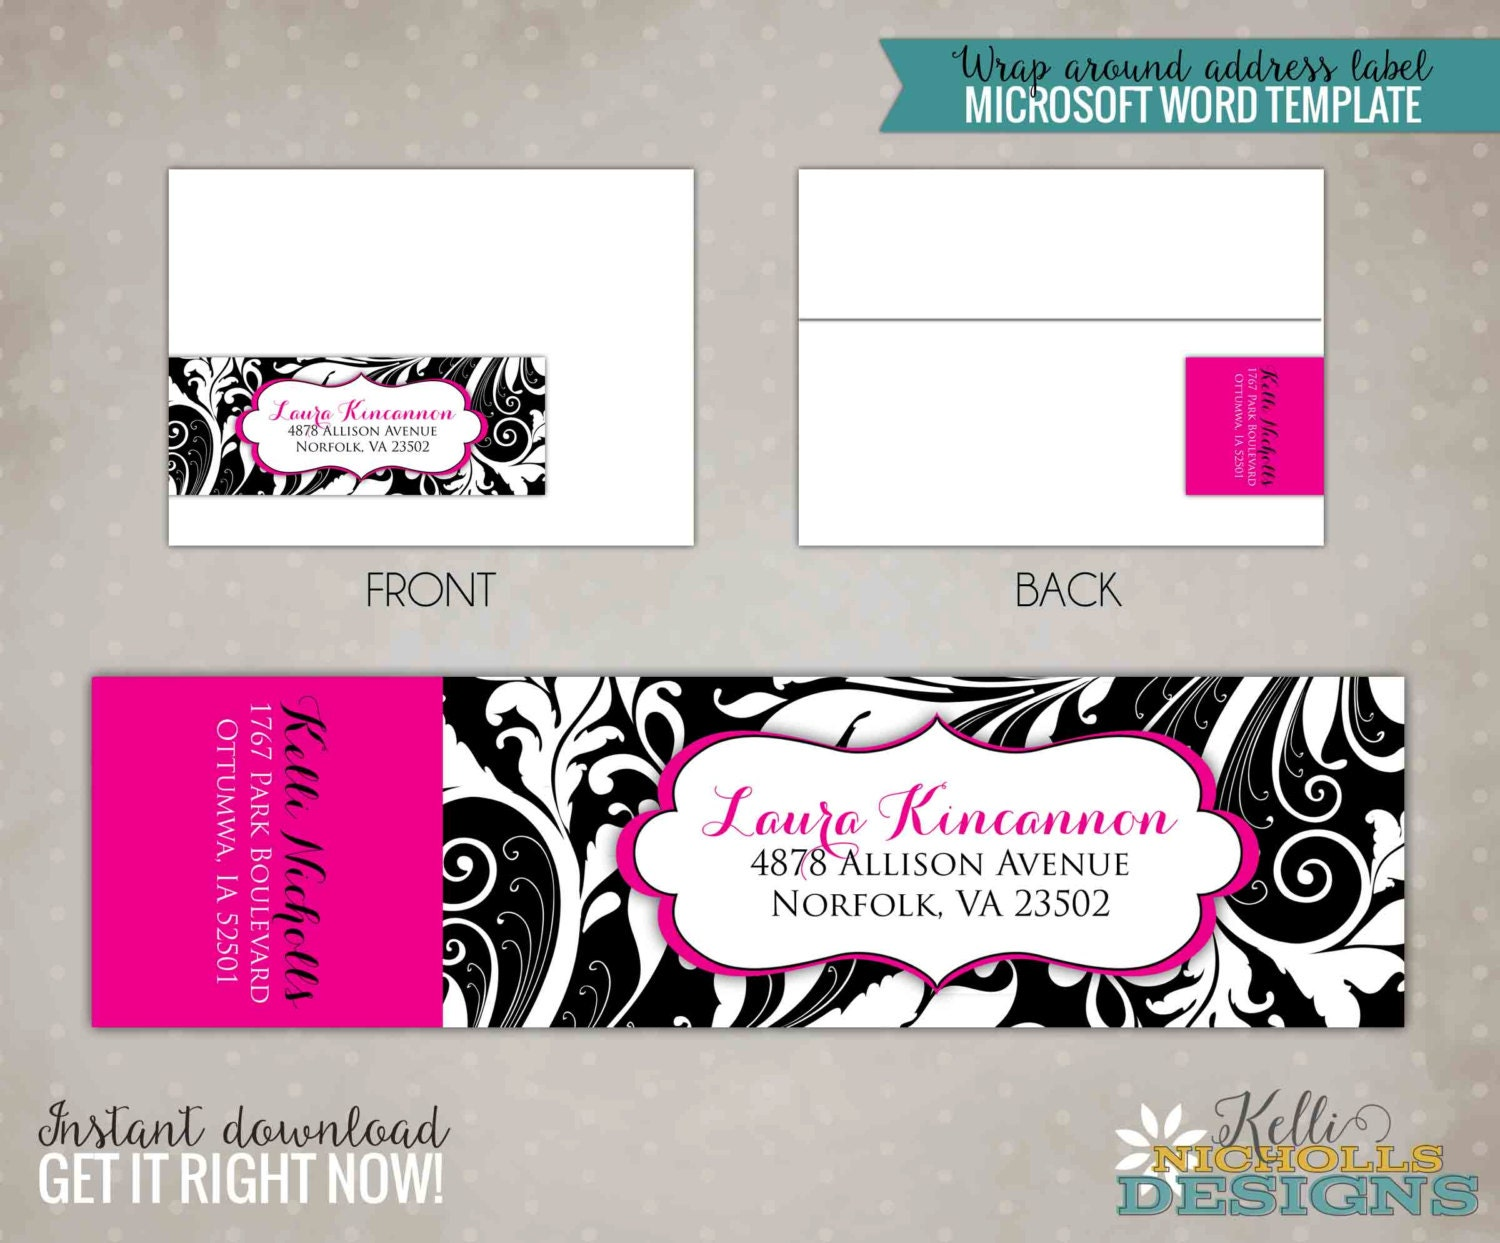 fancy wrap around personalized address label template adult. Black Bedroom Furniture Sets. Home Design Ideas